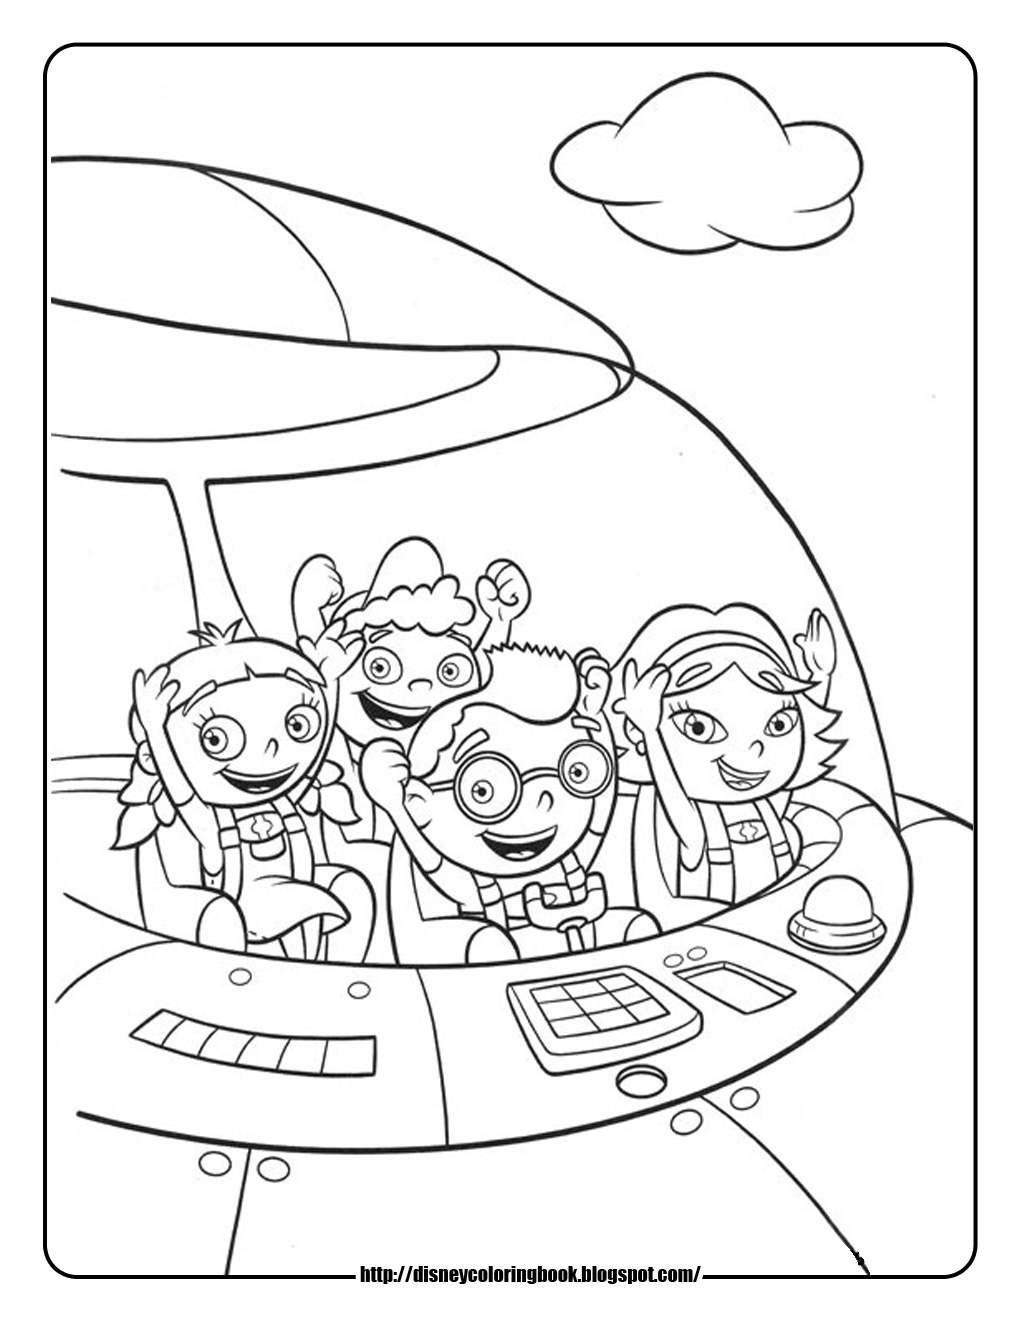 Disney Coloring Pages and Sheets for Kids: Little Einsteins 4: Free ...